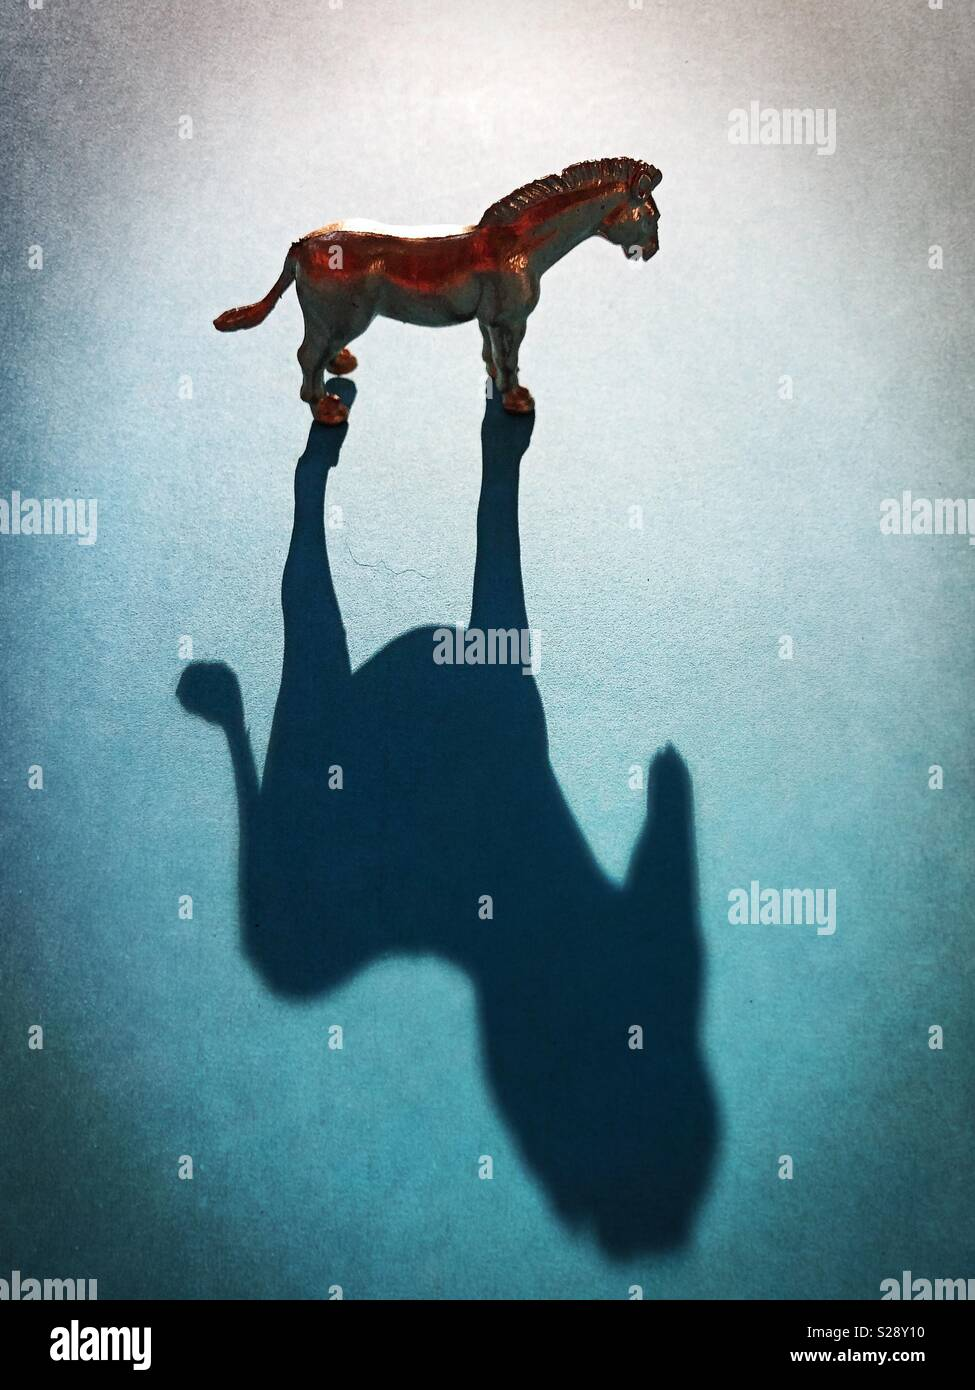 A gold horse figurine and shadow. - Stock Image